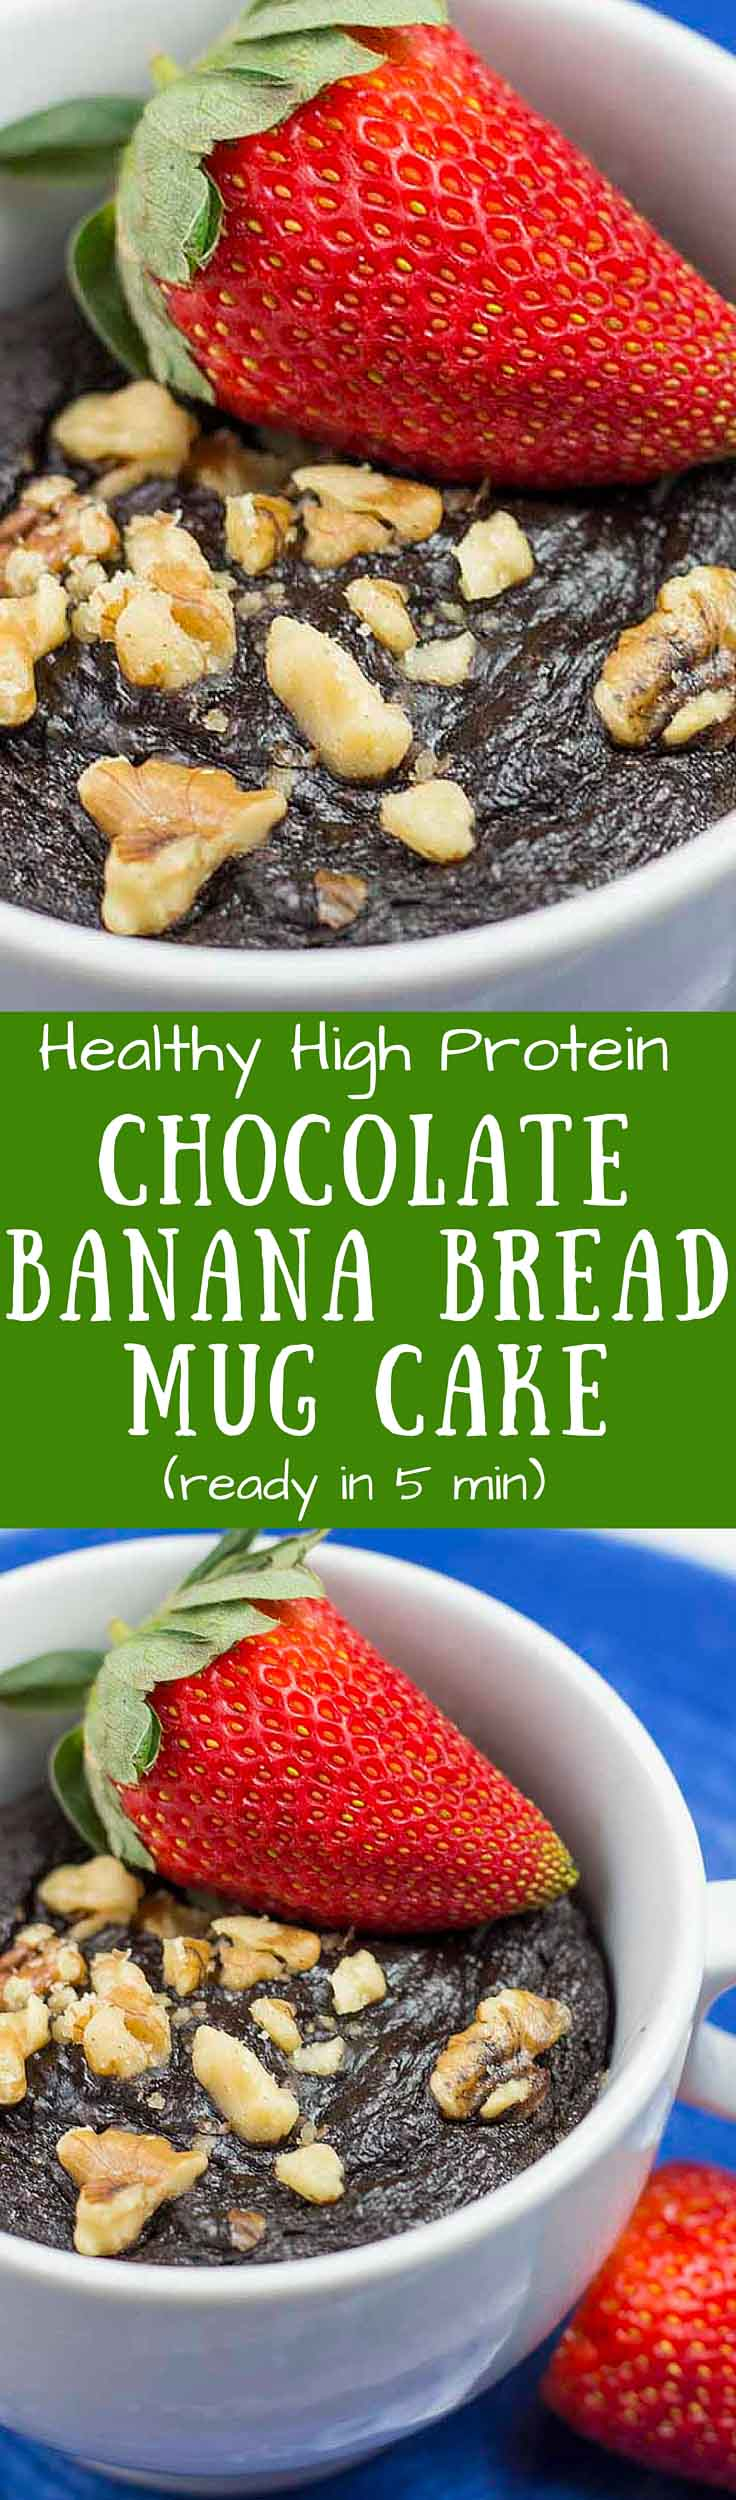 This Chocolate Banana Bread Mug Cake is healthy, high-protein, only takes a few minutes to make, and tastes amazing! It's a great breakfast or post-workout snack.